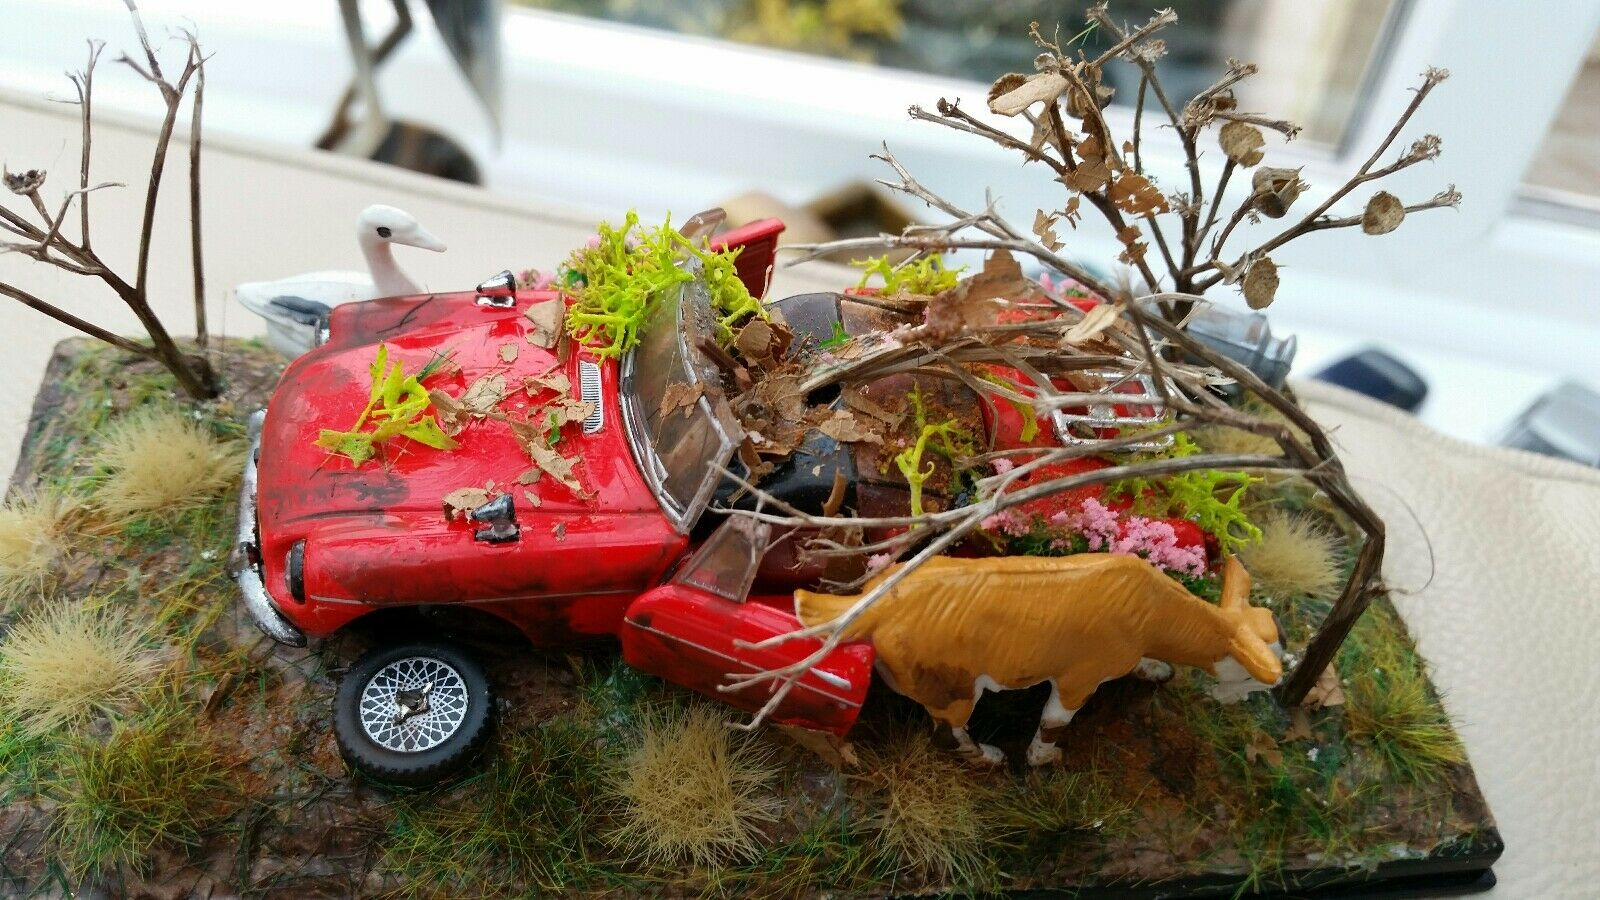 Red MGB Congreenible Dumped Barn Find Abandoned 1 43 Diorama Diecast Model Cased